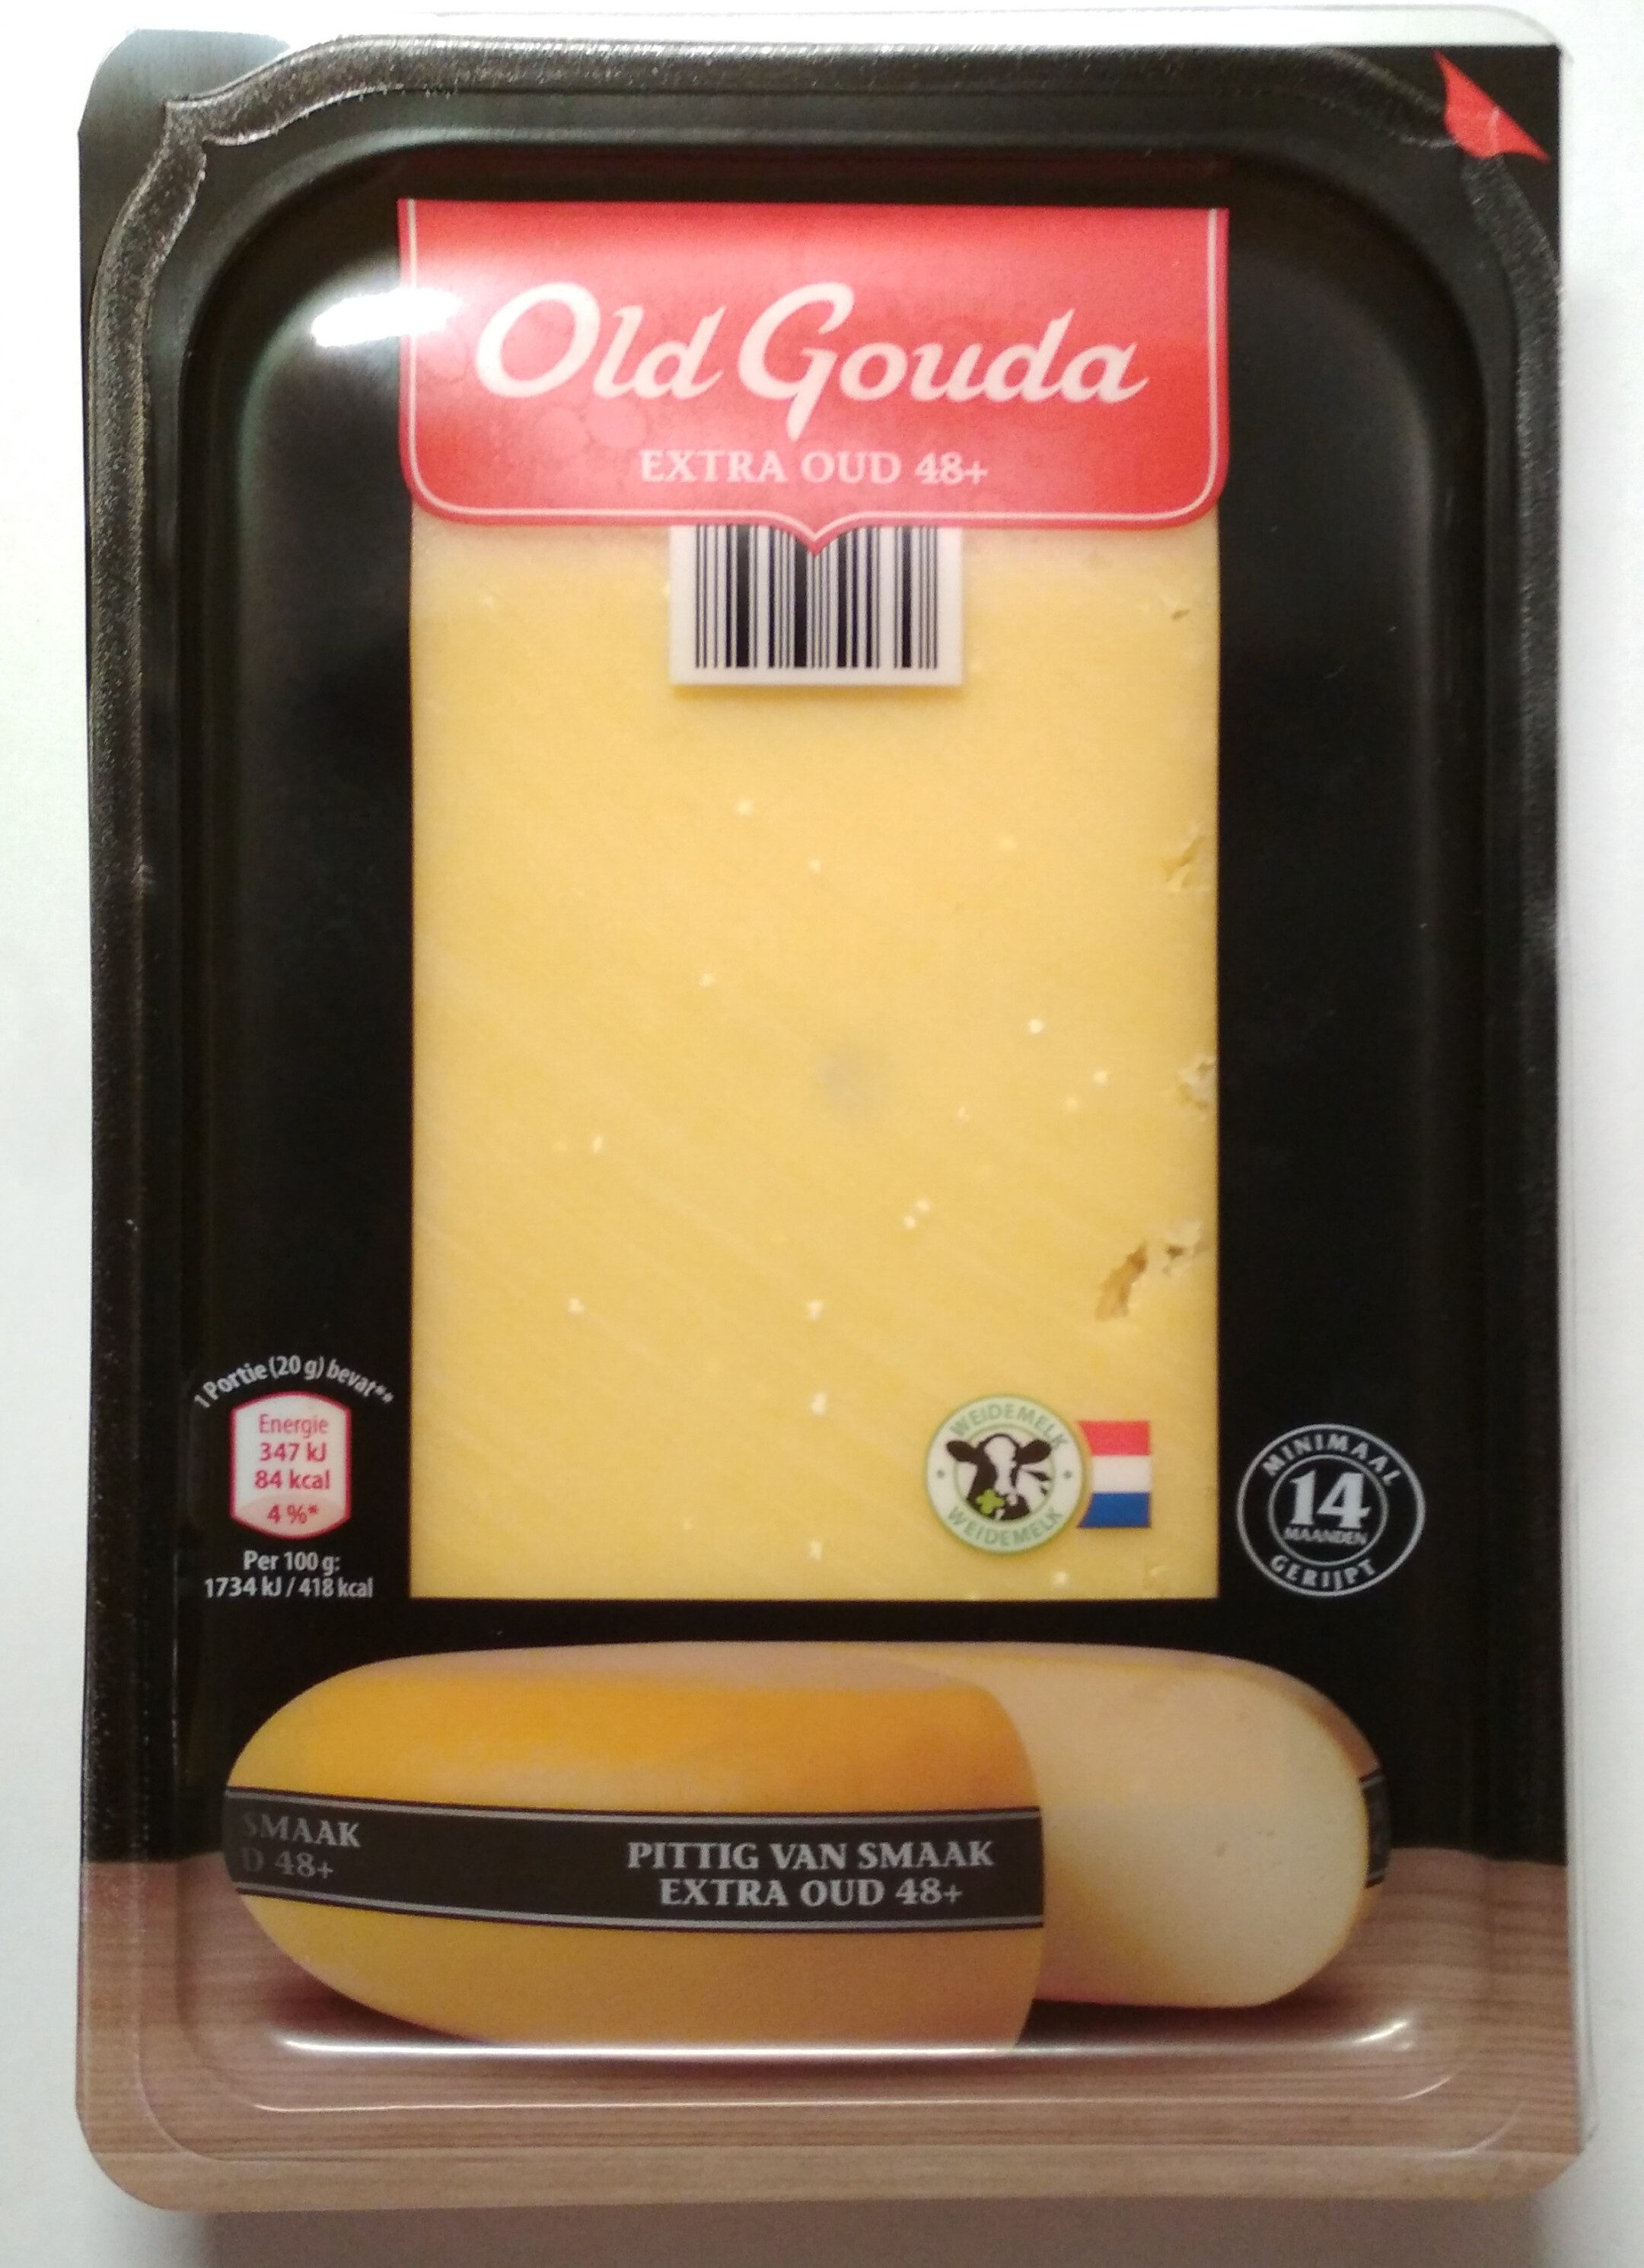 Old Gouda Extra Oud 48+ - Product - nl